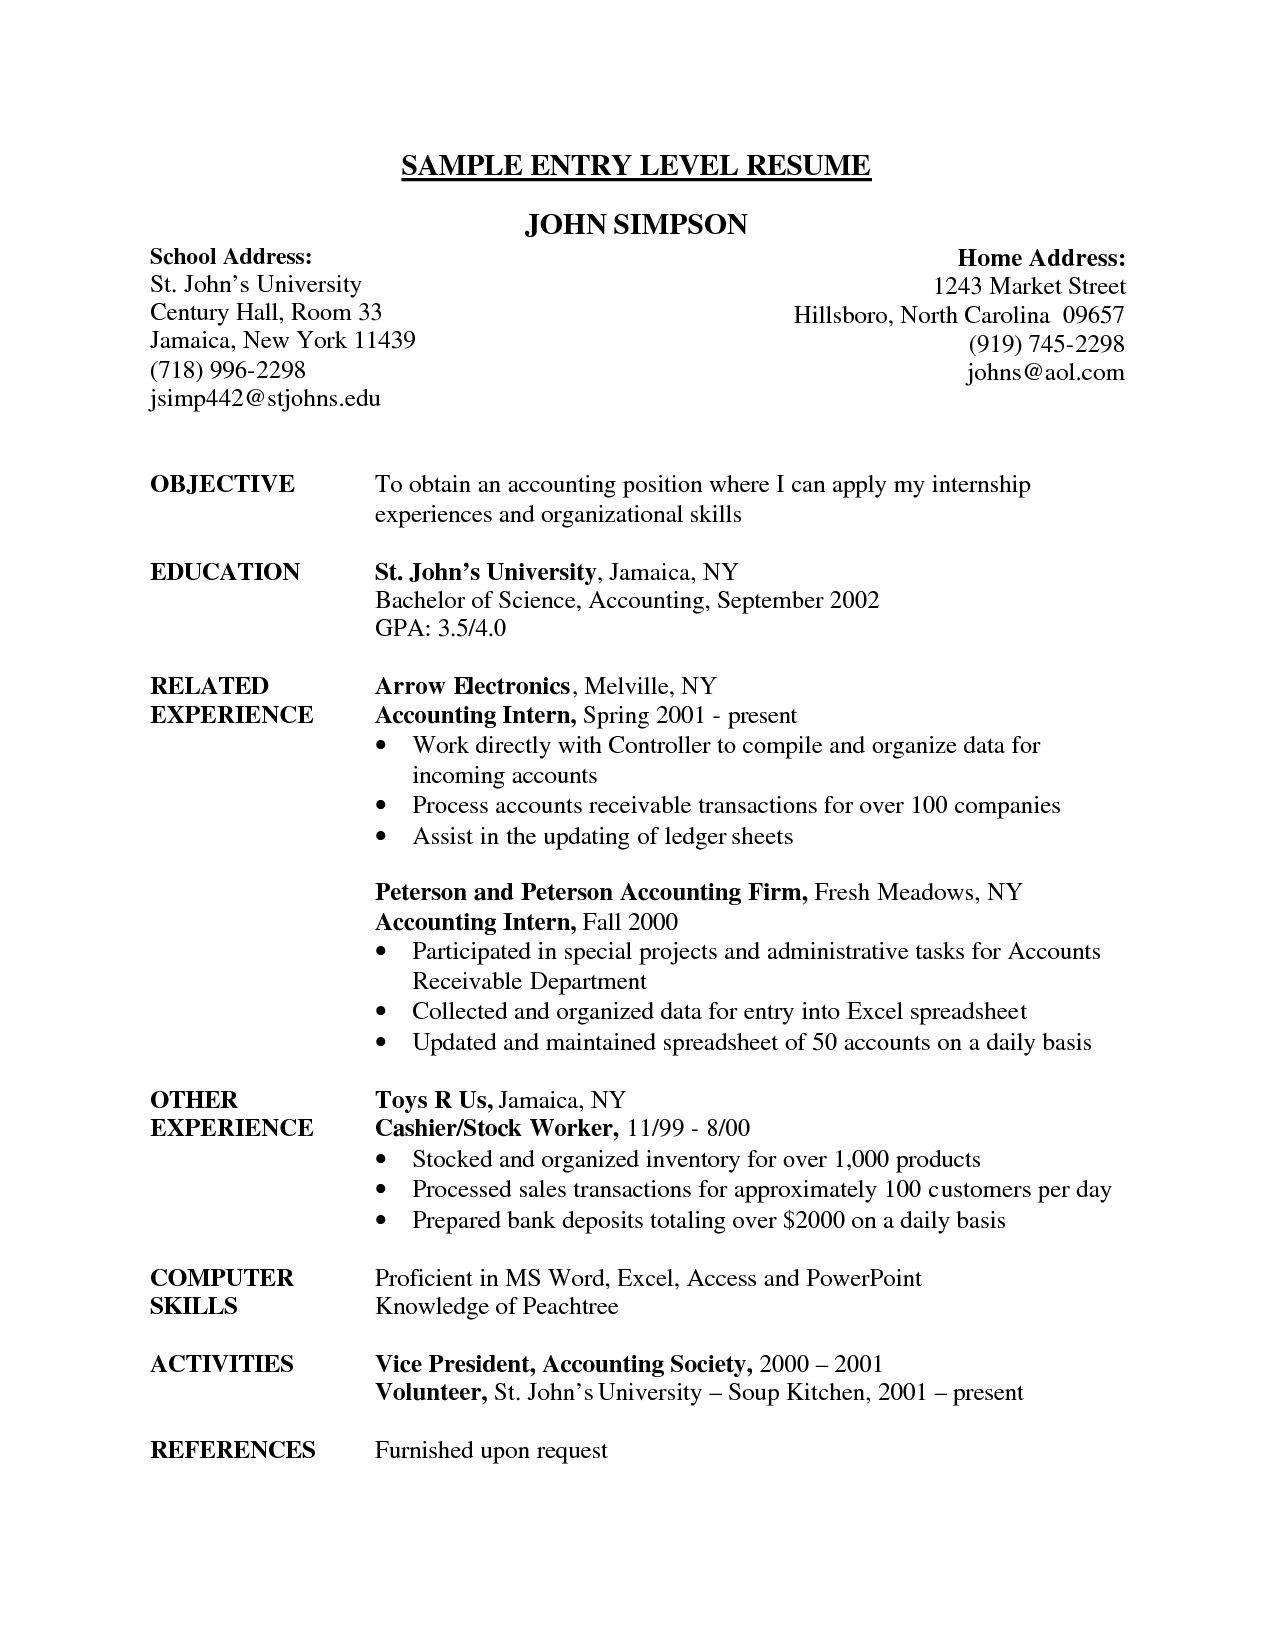 Elegant Entry Level Resume Example Entry Level Job Resume Examples 26161fd4f